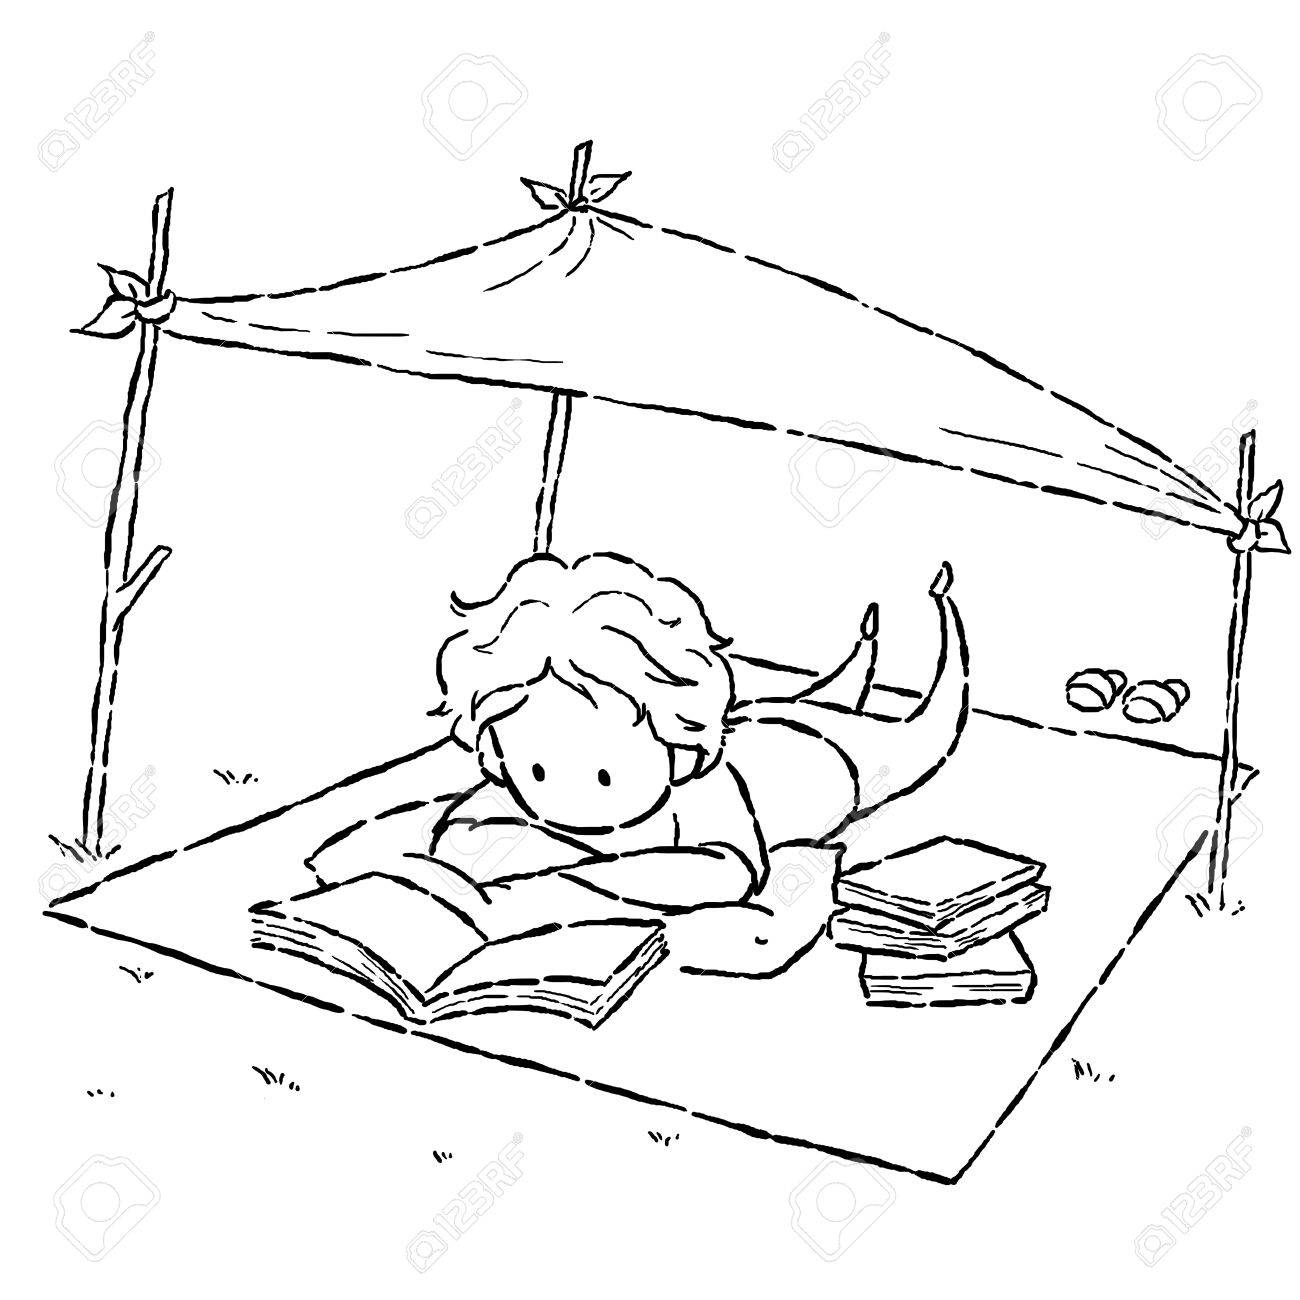 1300x1300 Image Drawing Cartoon Style Of Kid Reading Book In The Park Stock